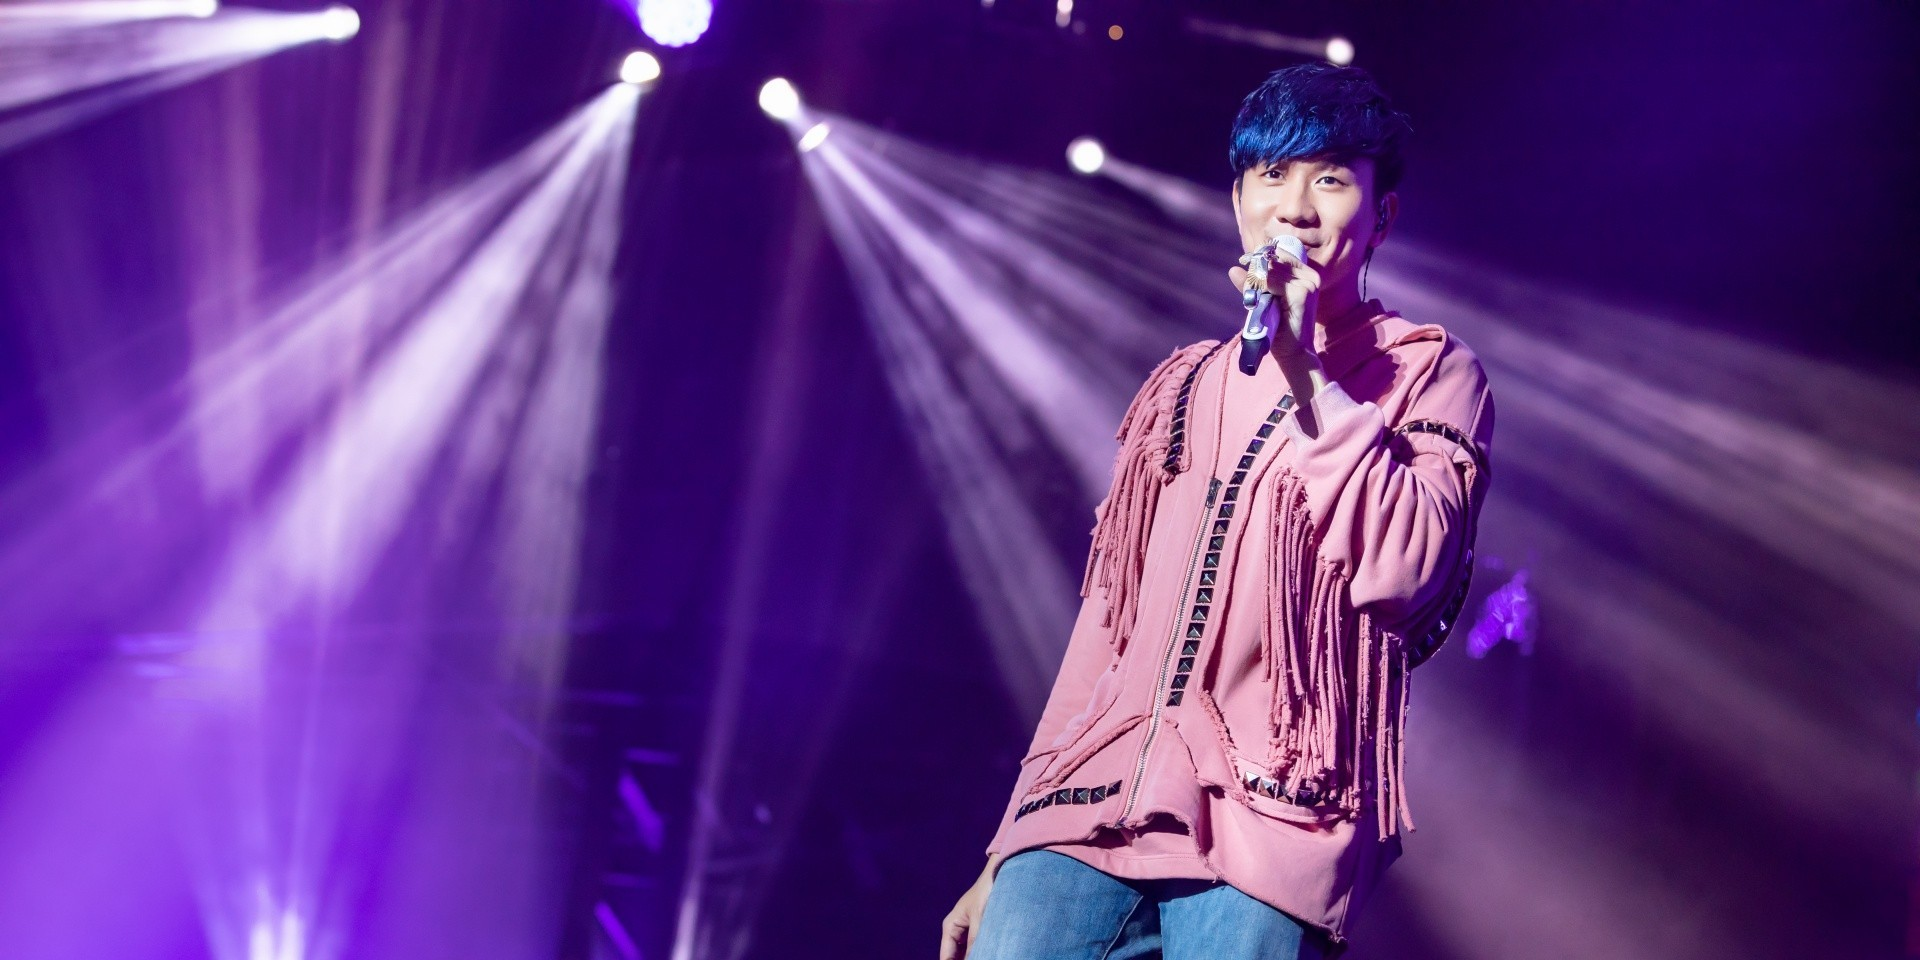 JJ Lin delivers an unforgettable performance at his Sanctuary World Tour - gig report